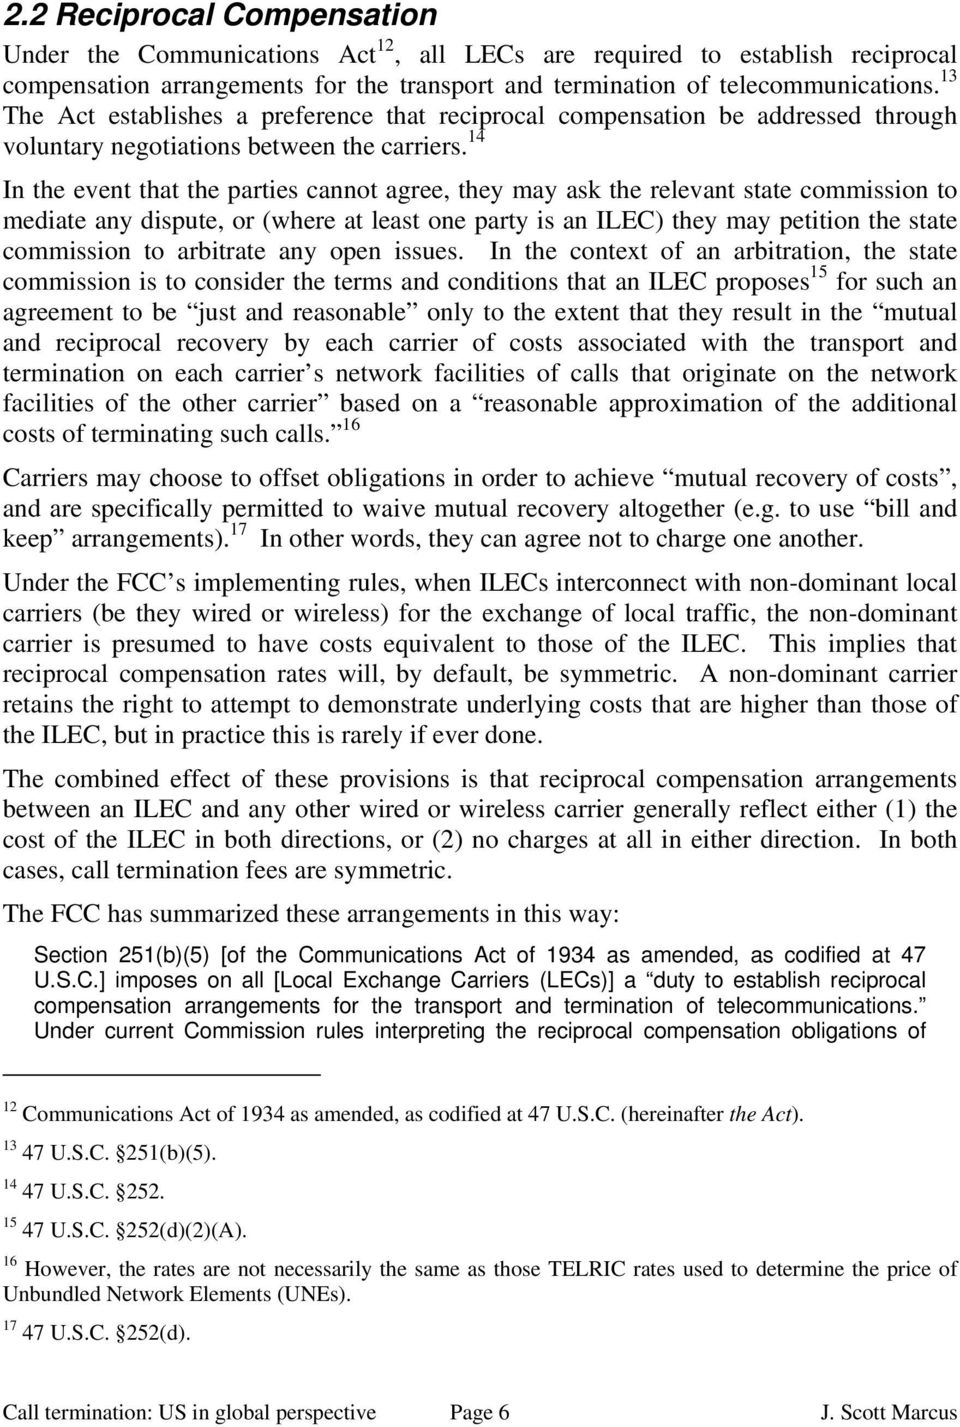 14 In the event that the parties cannot agree, they may ask the relevant state commission to mediate any dispute, or (where at least one party is an ILEC) they may petition the state commission to